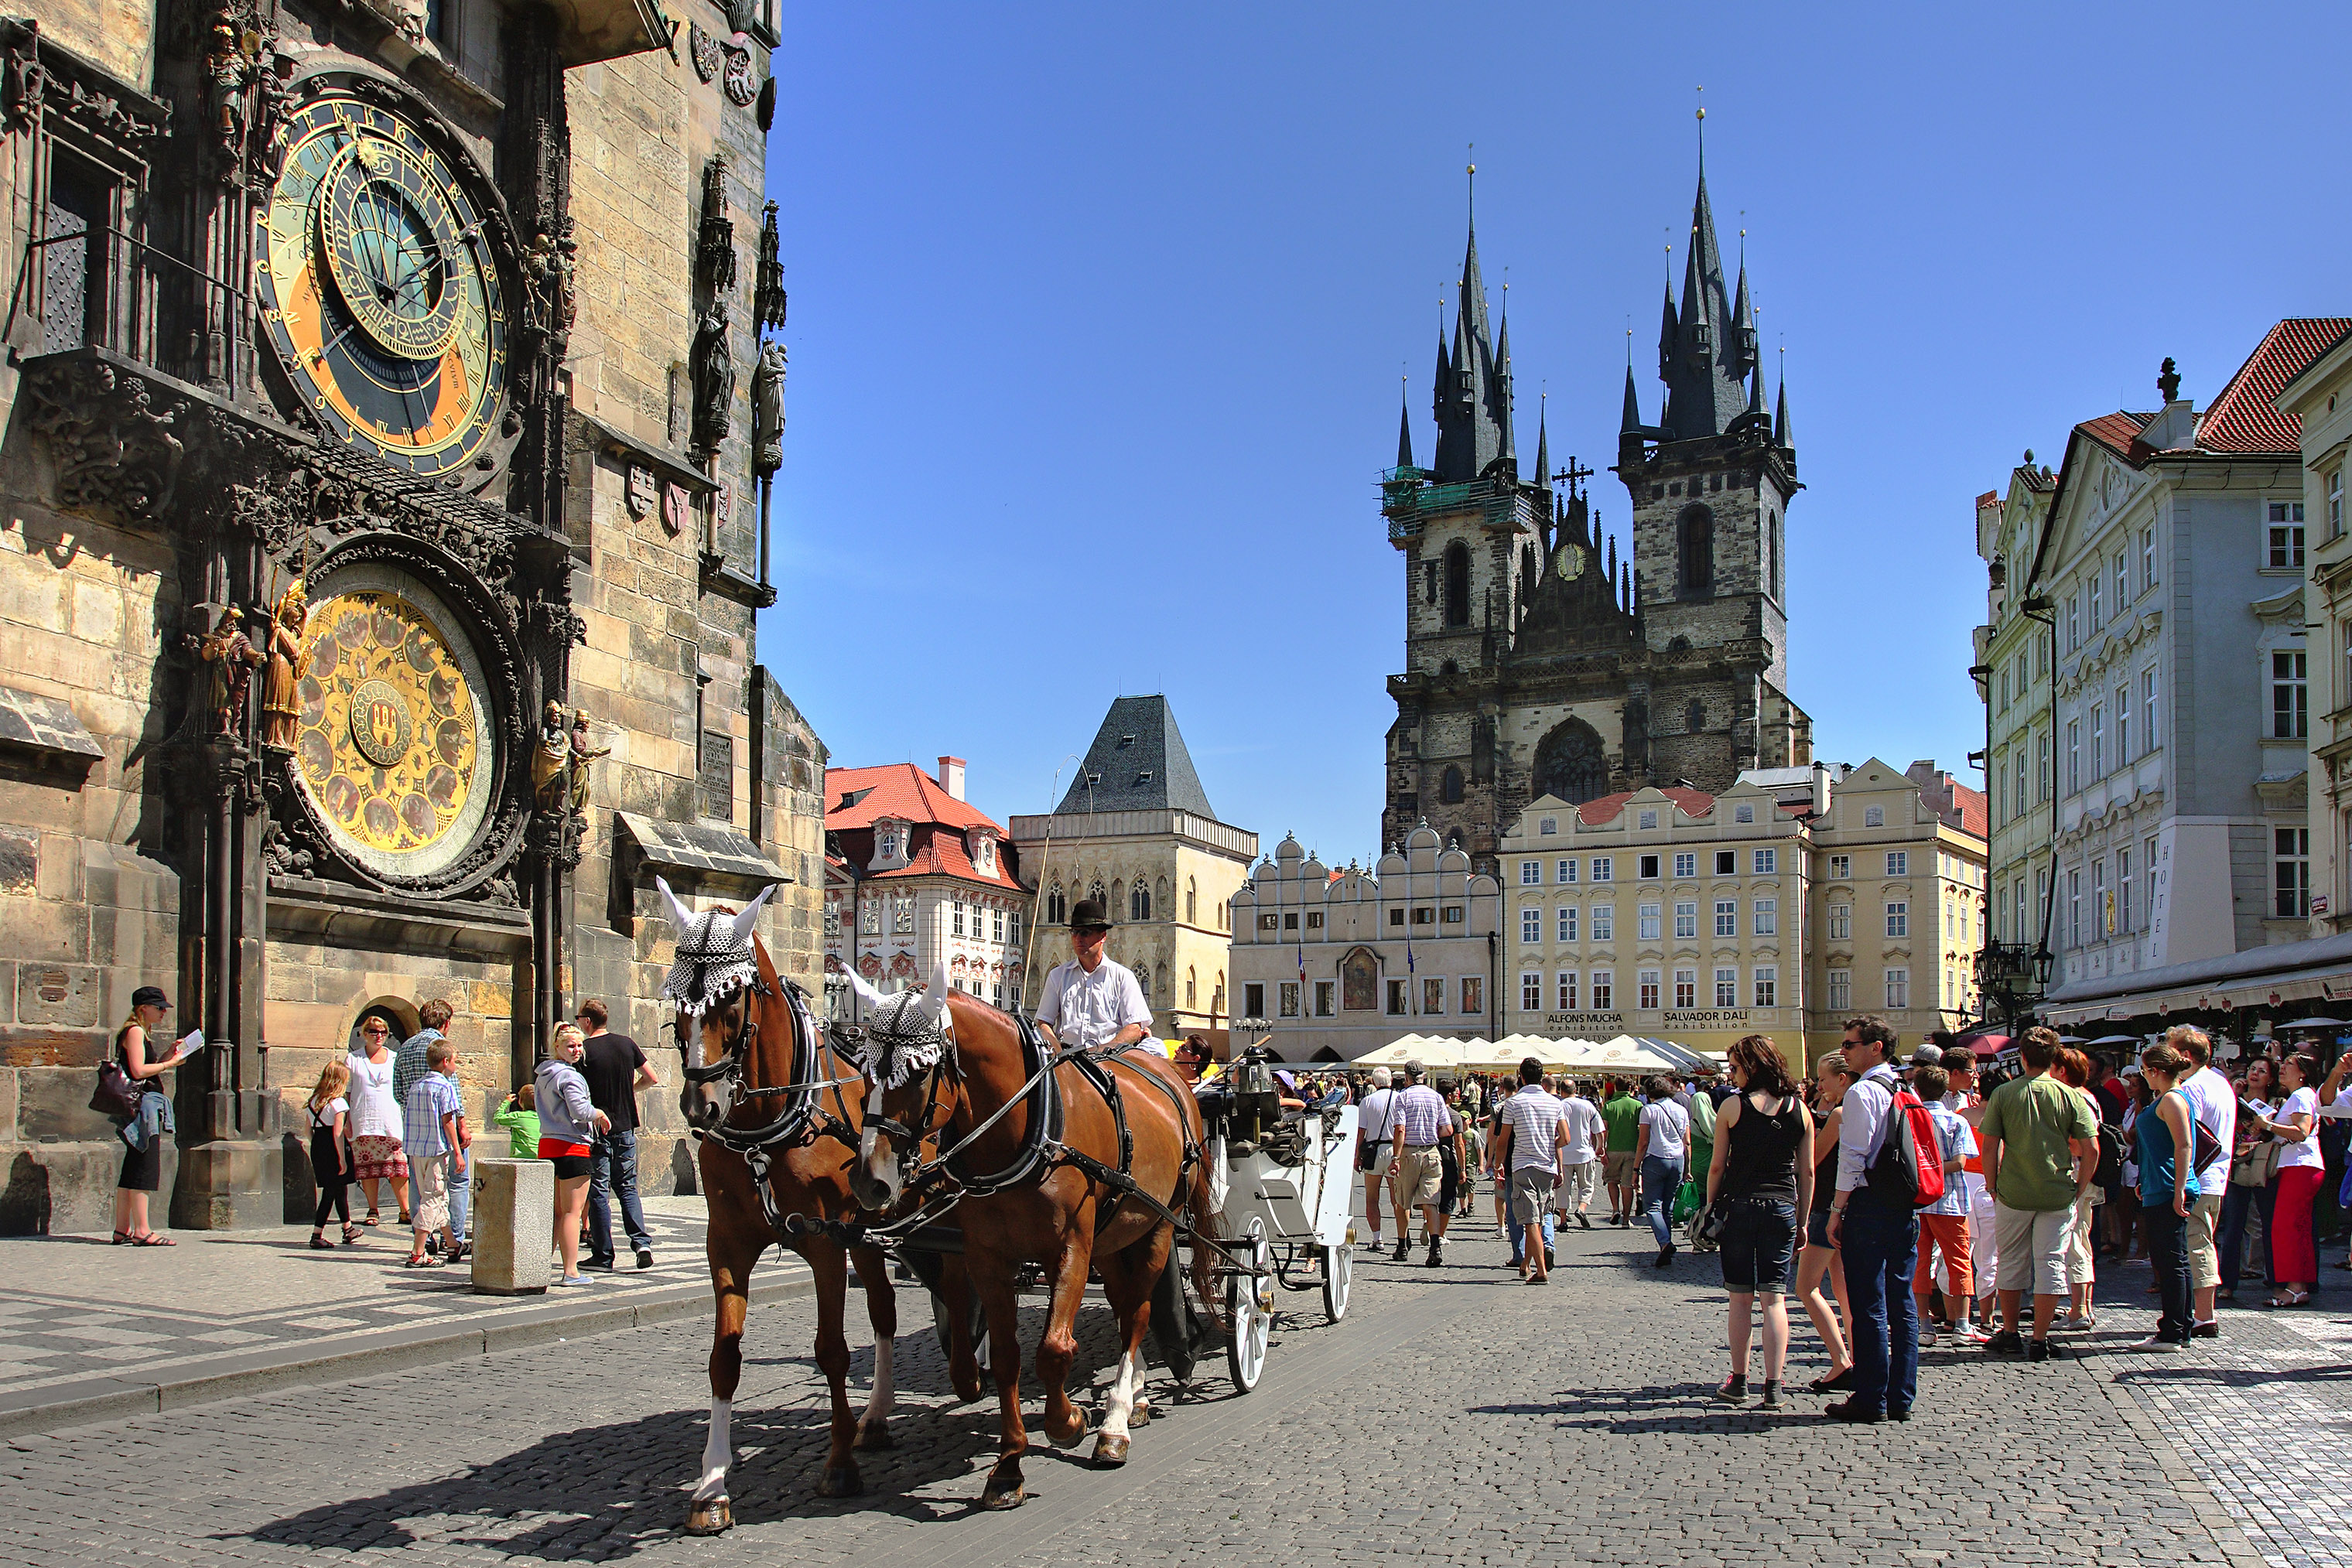 A carriage passes by the historic Old Town Square in Prague.